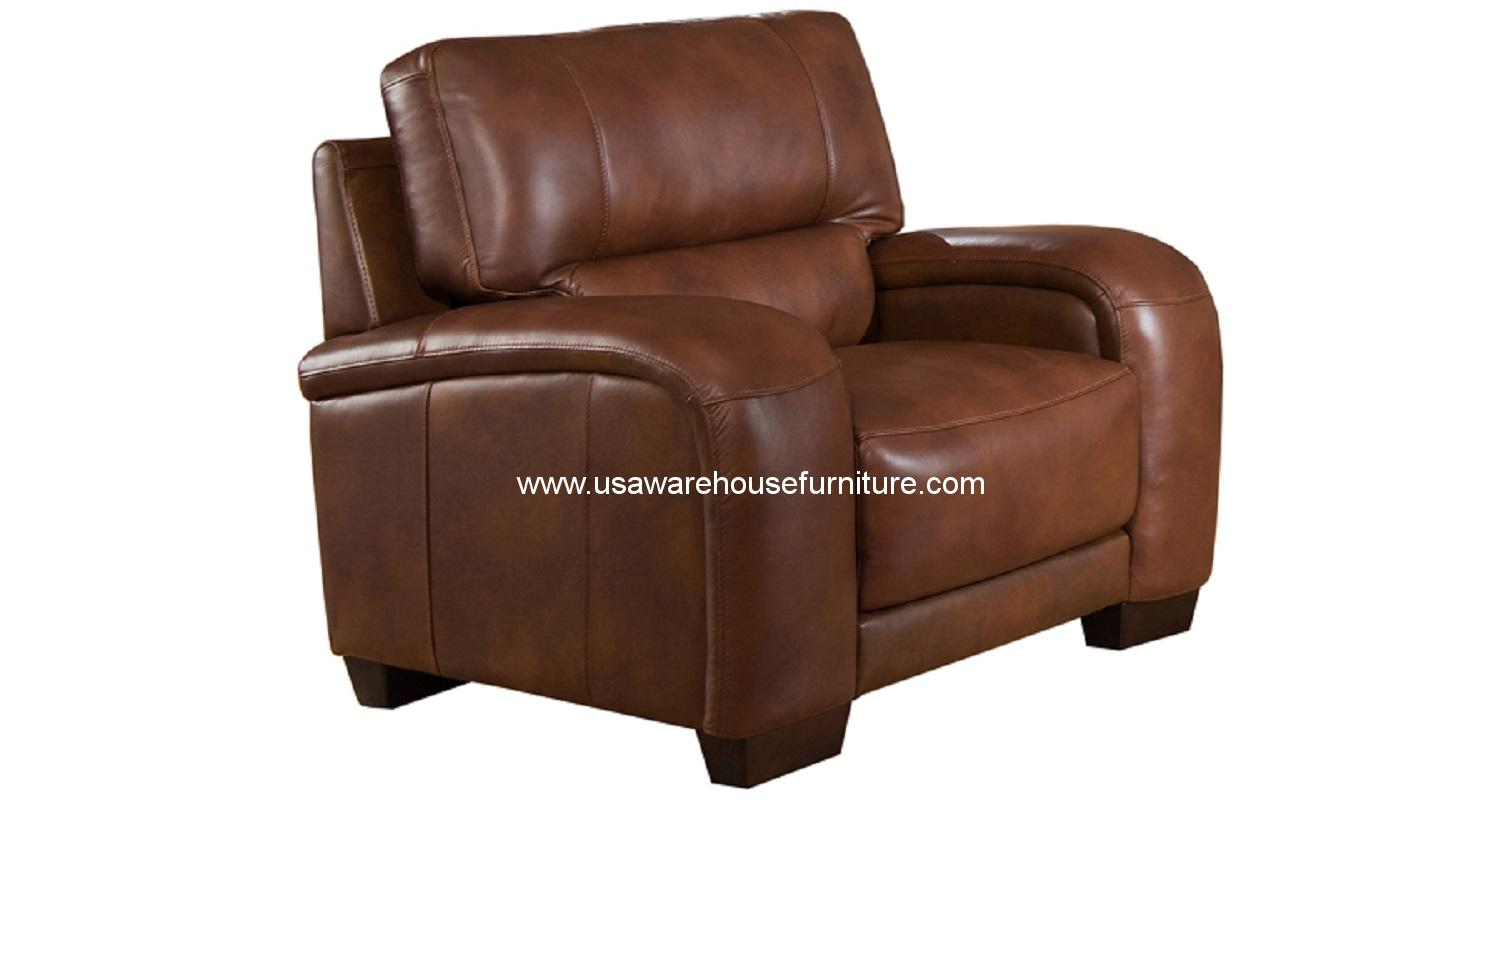 brigitte brown full top grain leather chair usa warehouse furniture. Black Bedroom Furniture Sets. Home Design Ideas